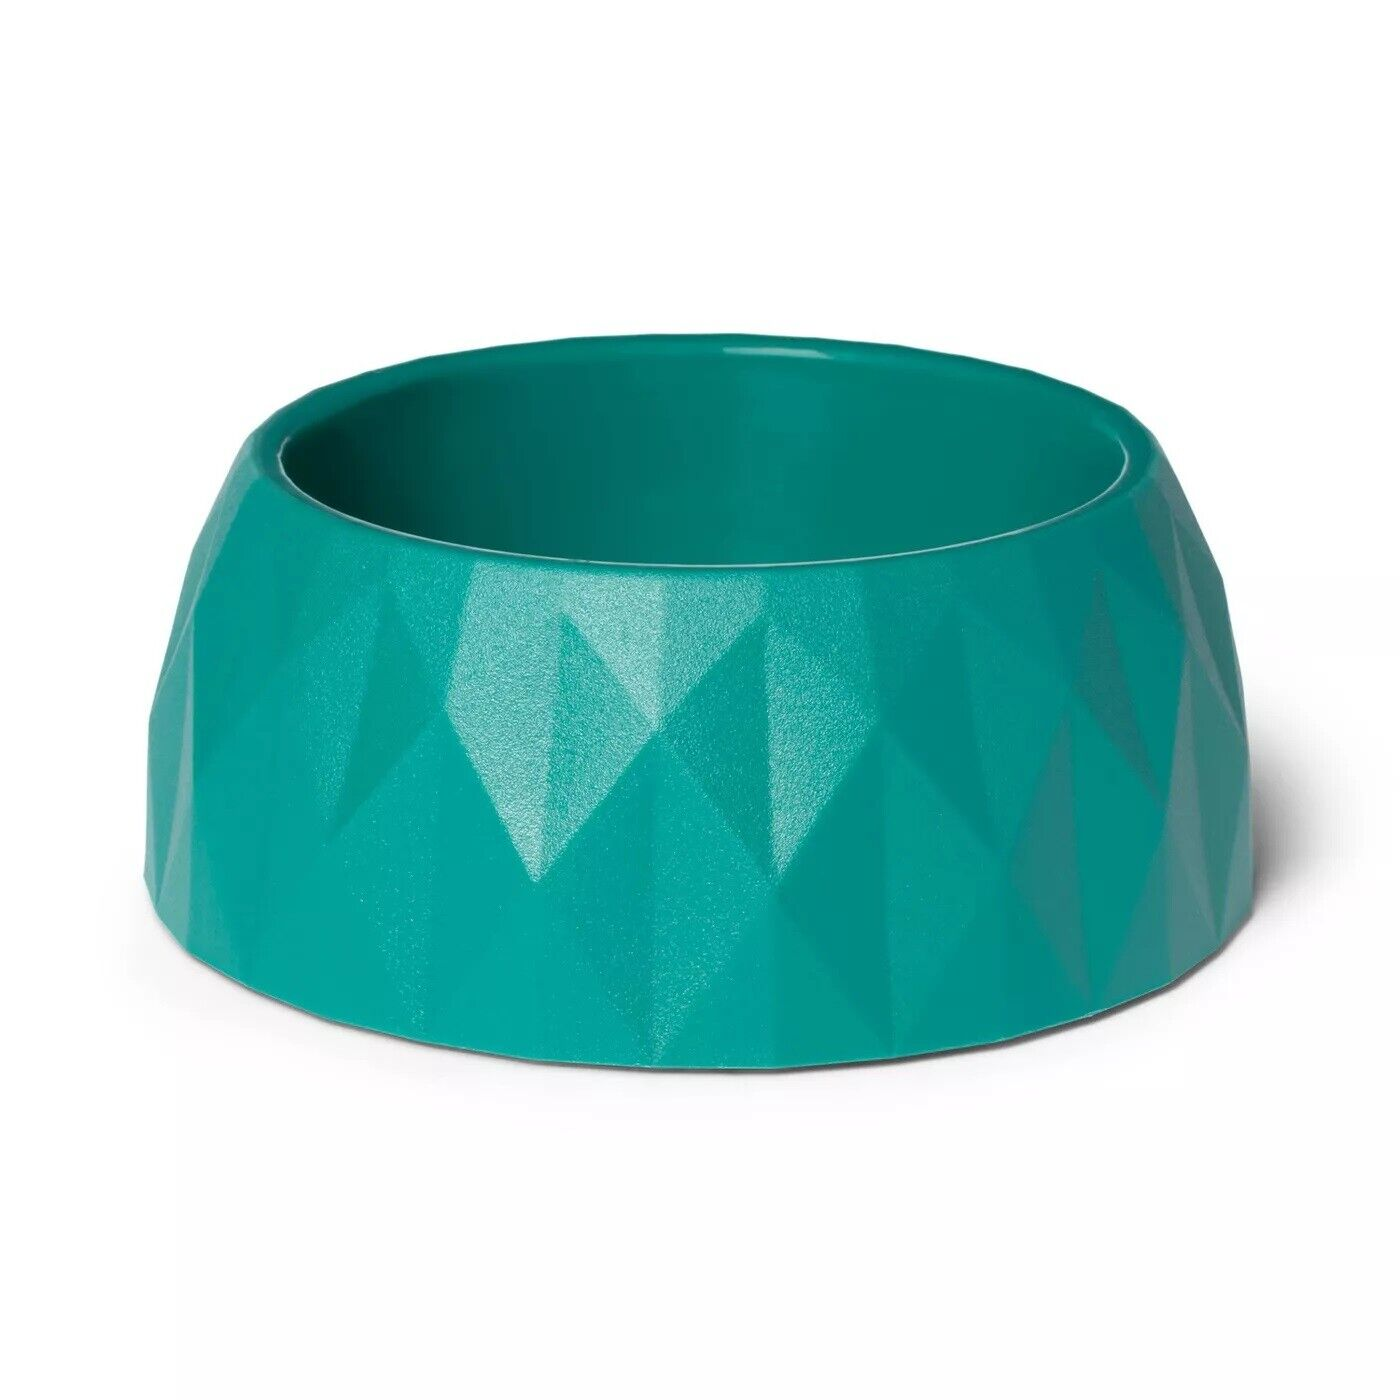 Pet Food & Drink Bowl Diamond Faceted 4 cup Dog Dish Teal NEW by Boots & Barkley